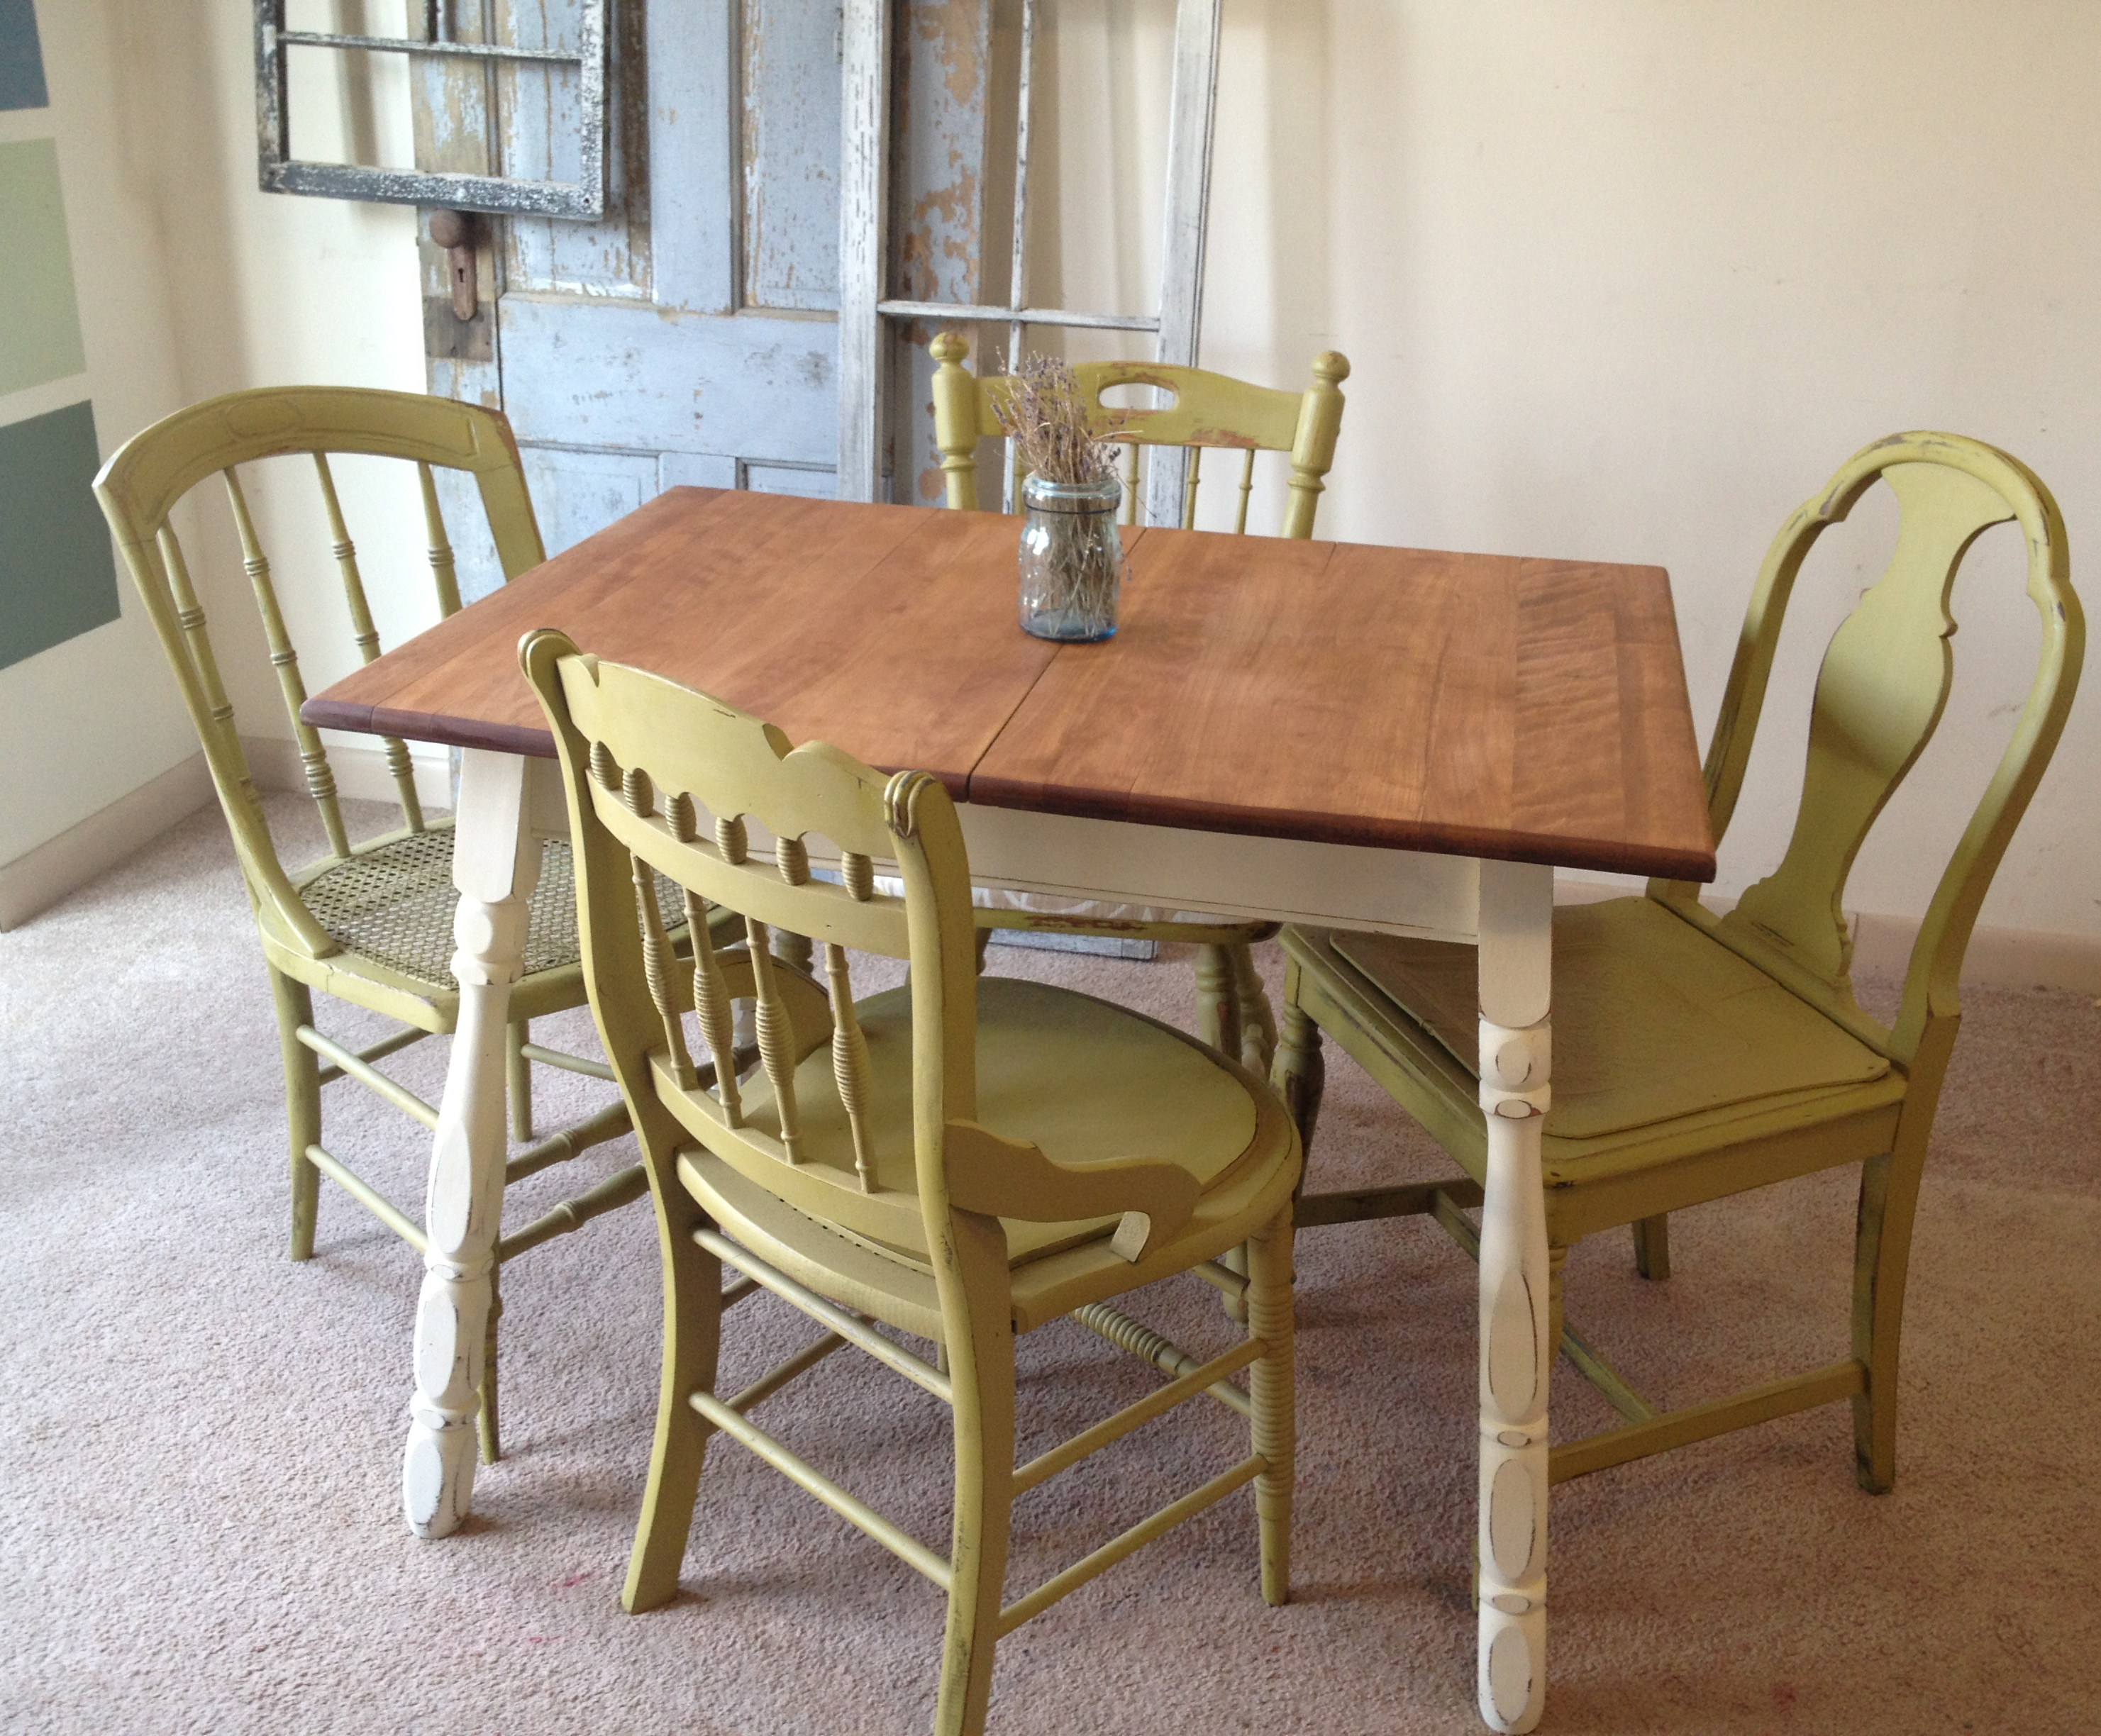 vintage kitchen table and chairs photo - 1